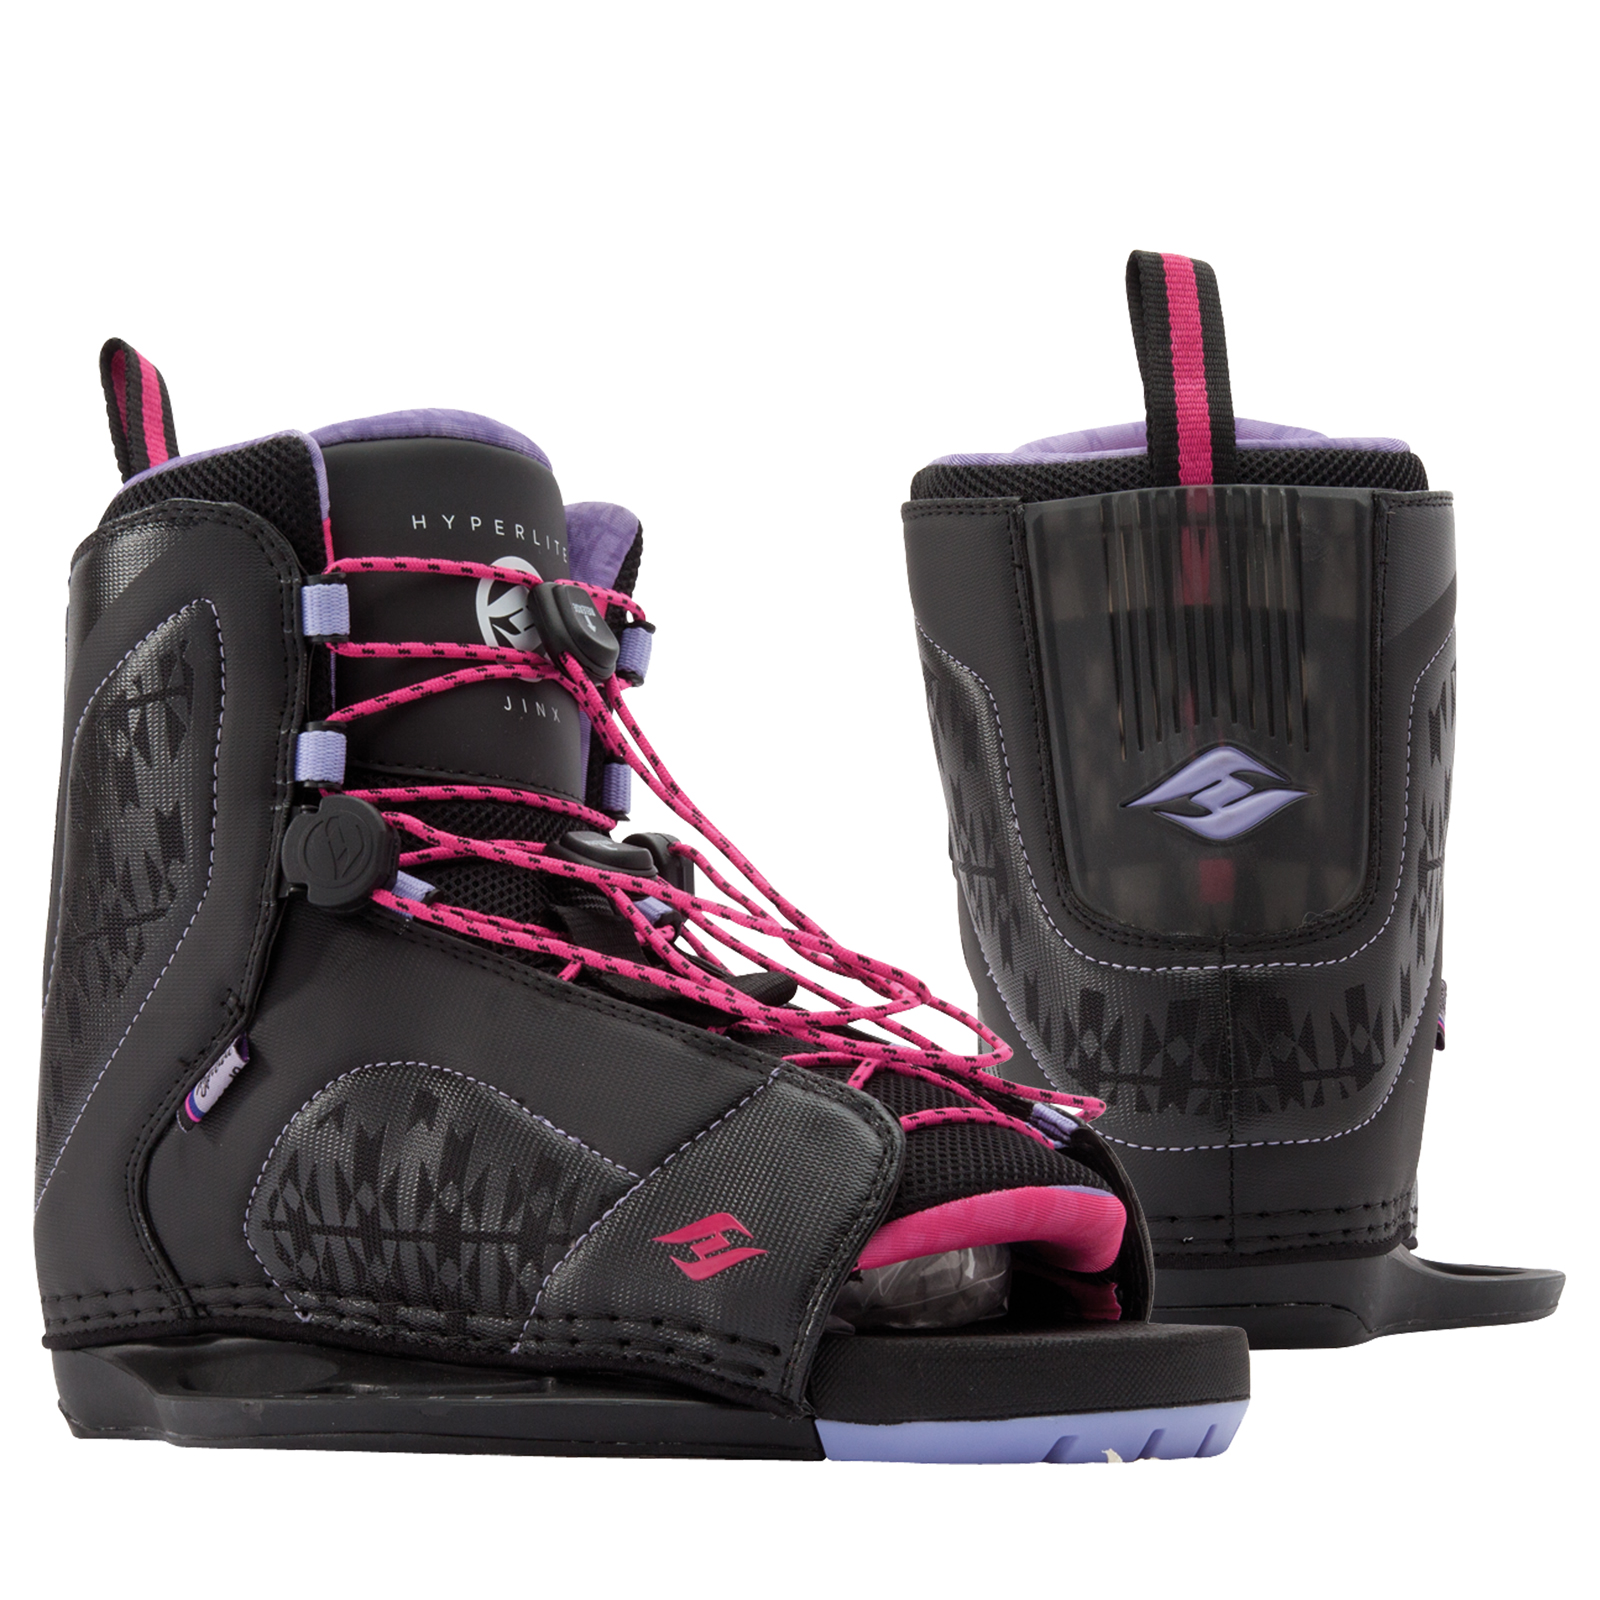 JINX BOOT HYPERLITE 2017